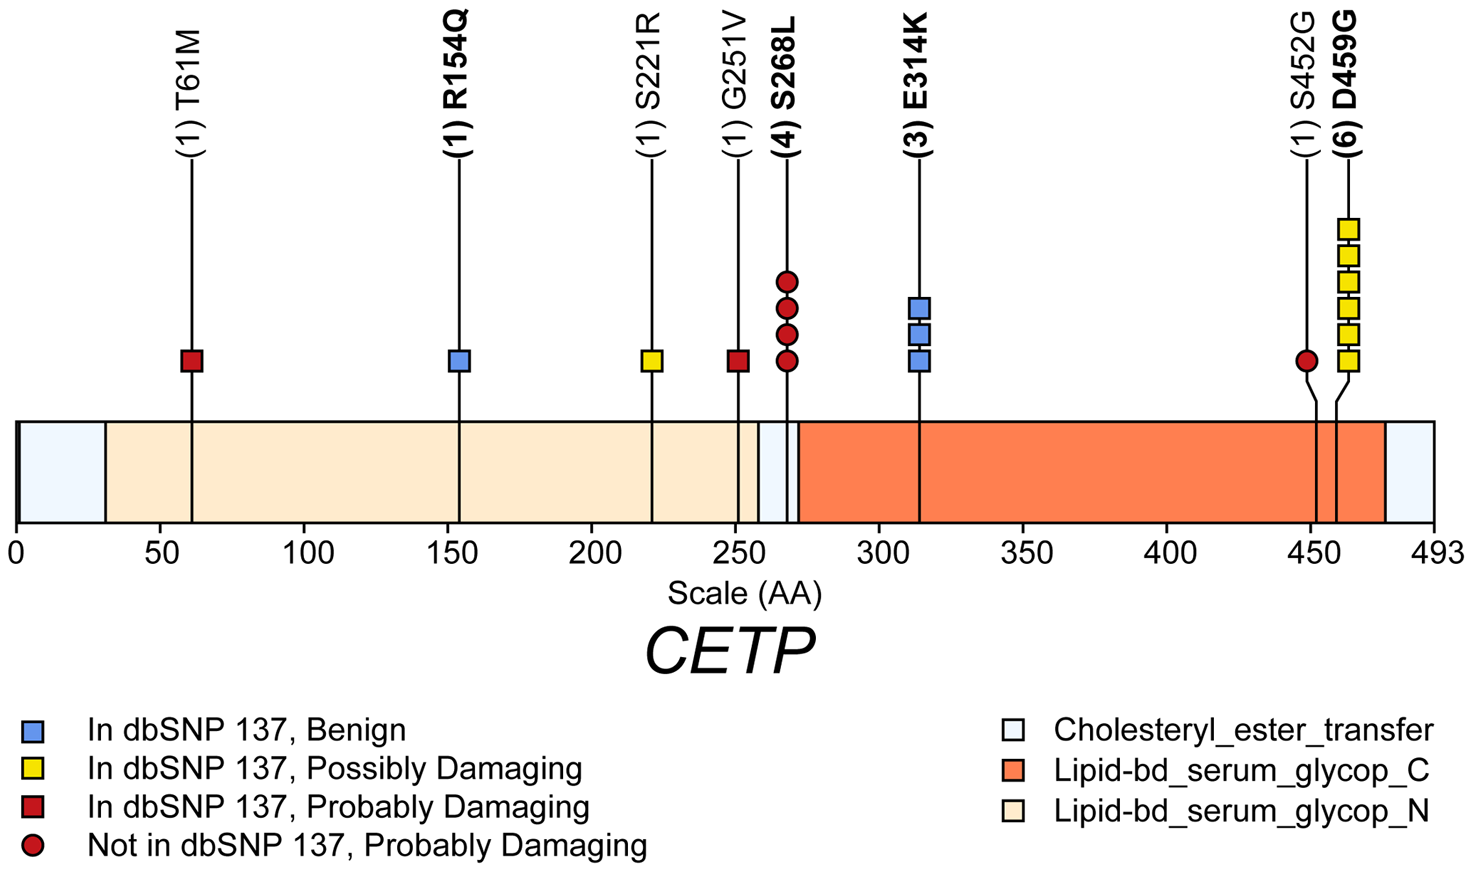 Schematic of rare (MAF<1%) non-synonymous variants used in the gene-level test HDL-C in gene <i>CETP</i>.